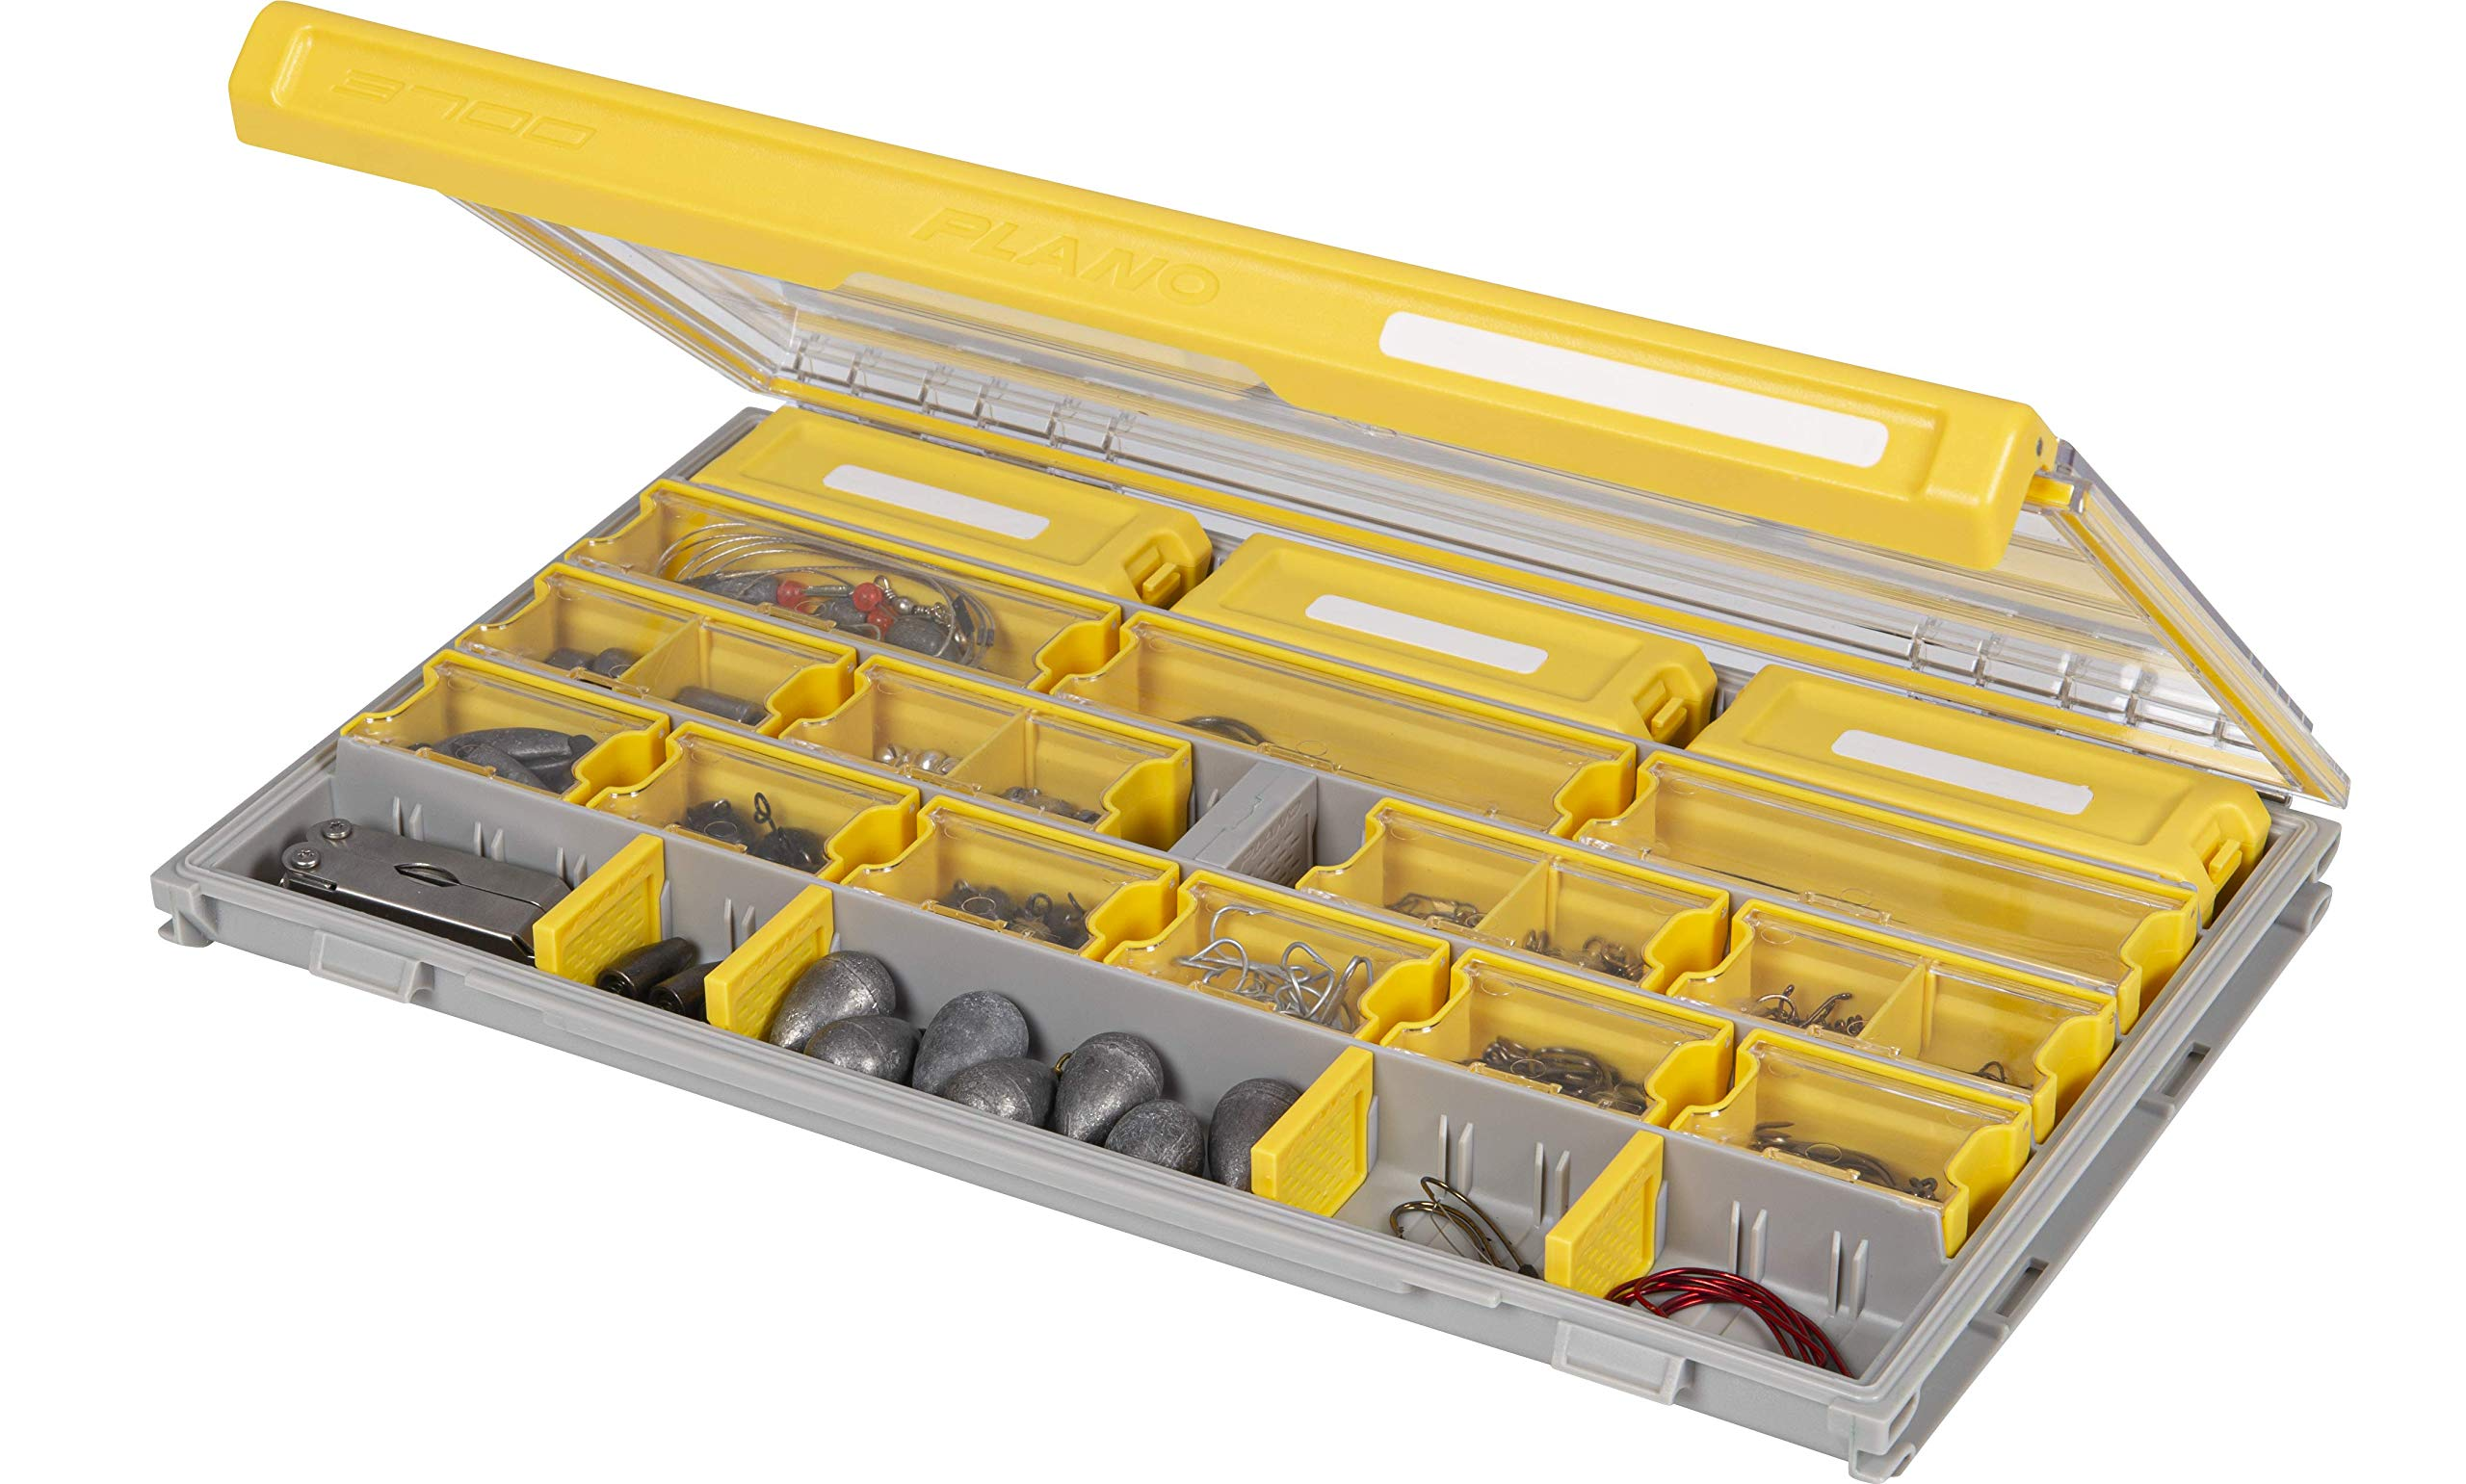 Plano Edge Master Terminal Tackle Storage | Premium Tackle Organization with Rust Prevention, Clear/Yellow, One-Size